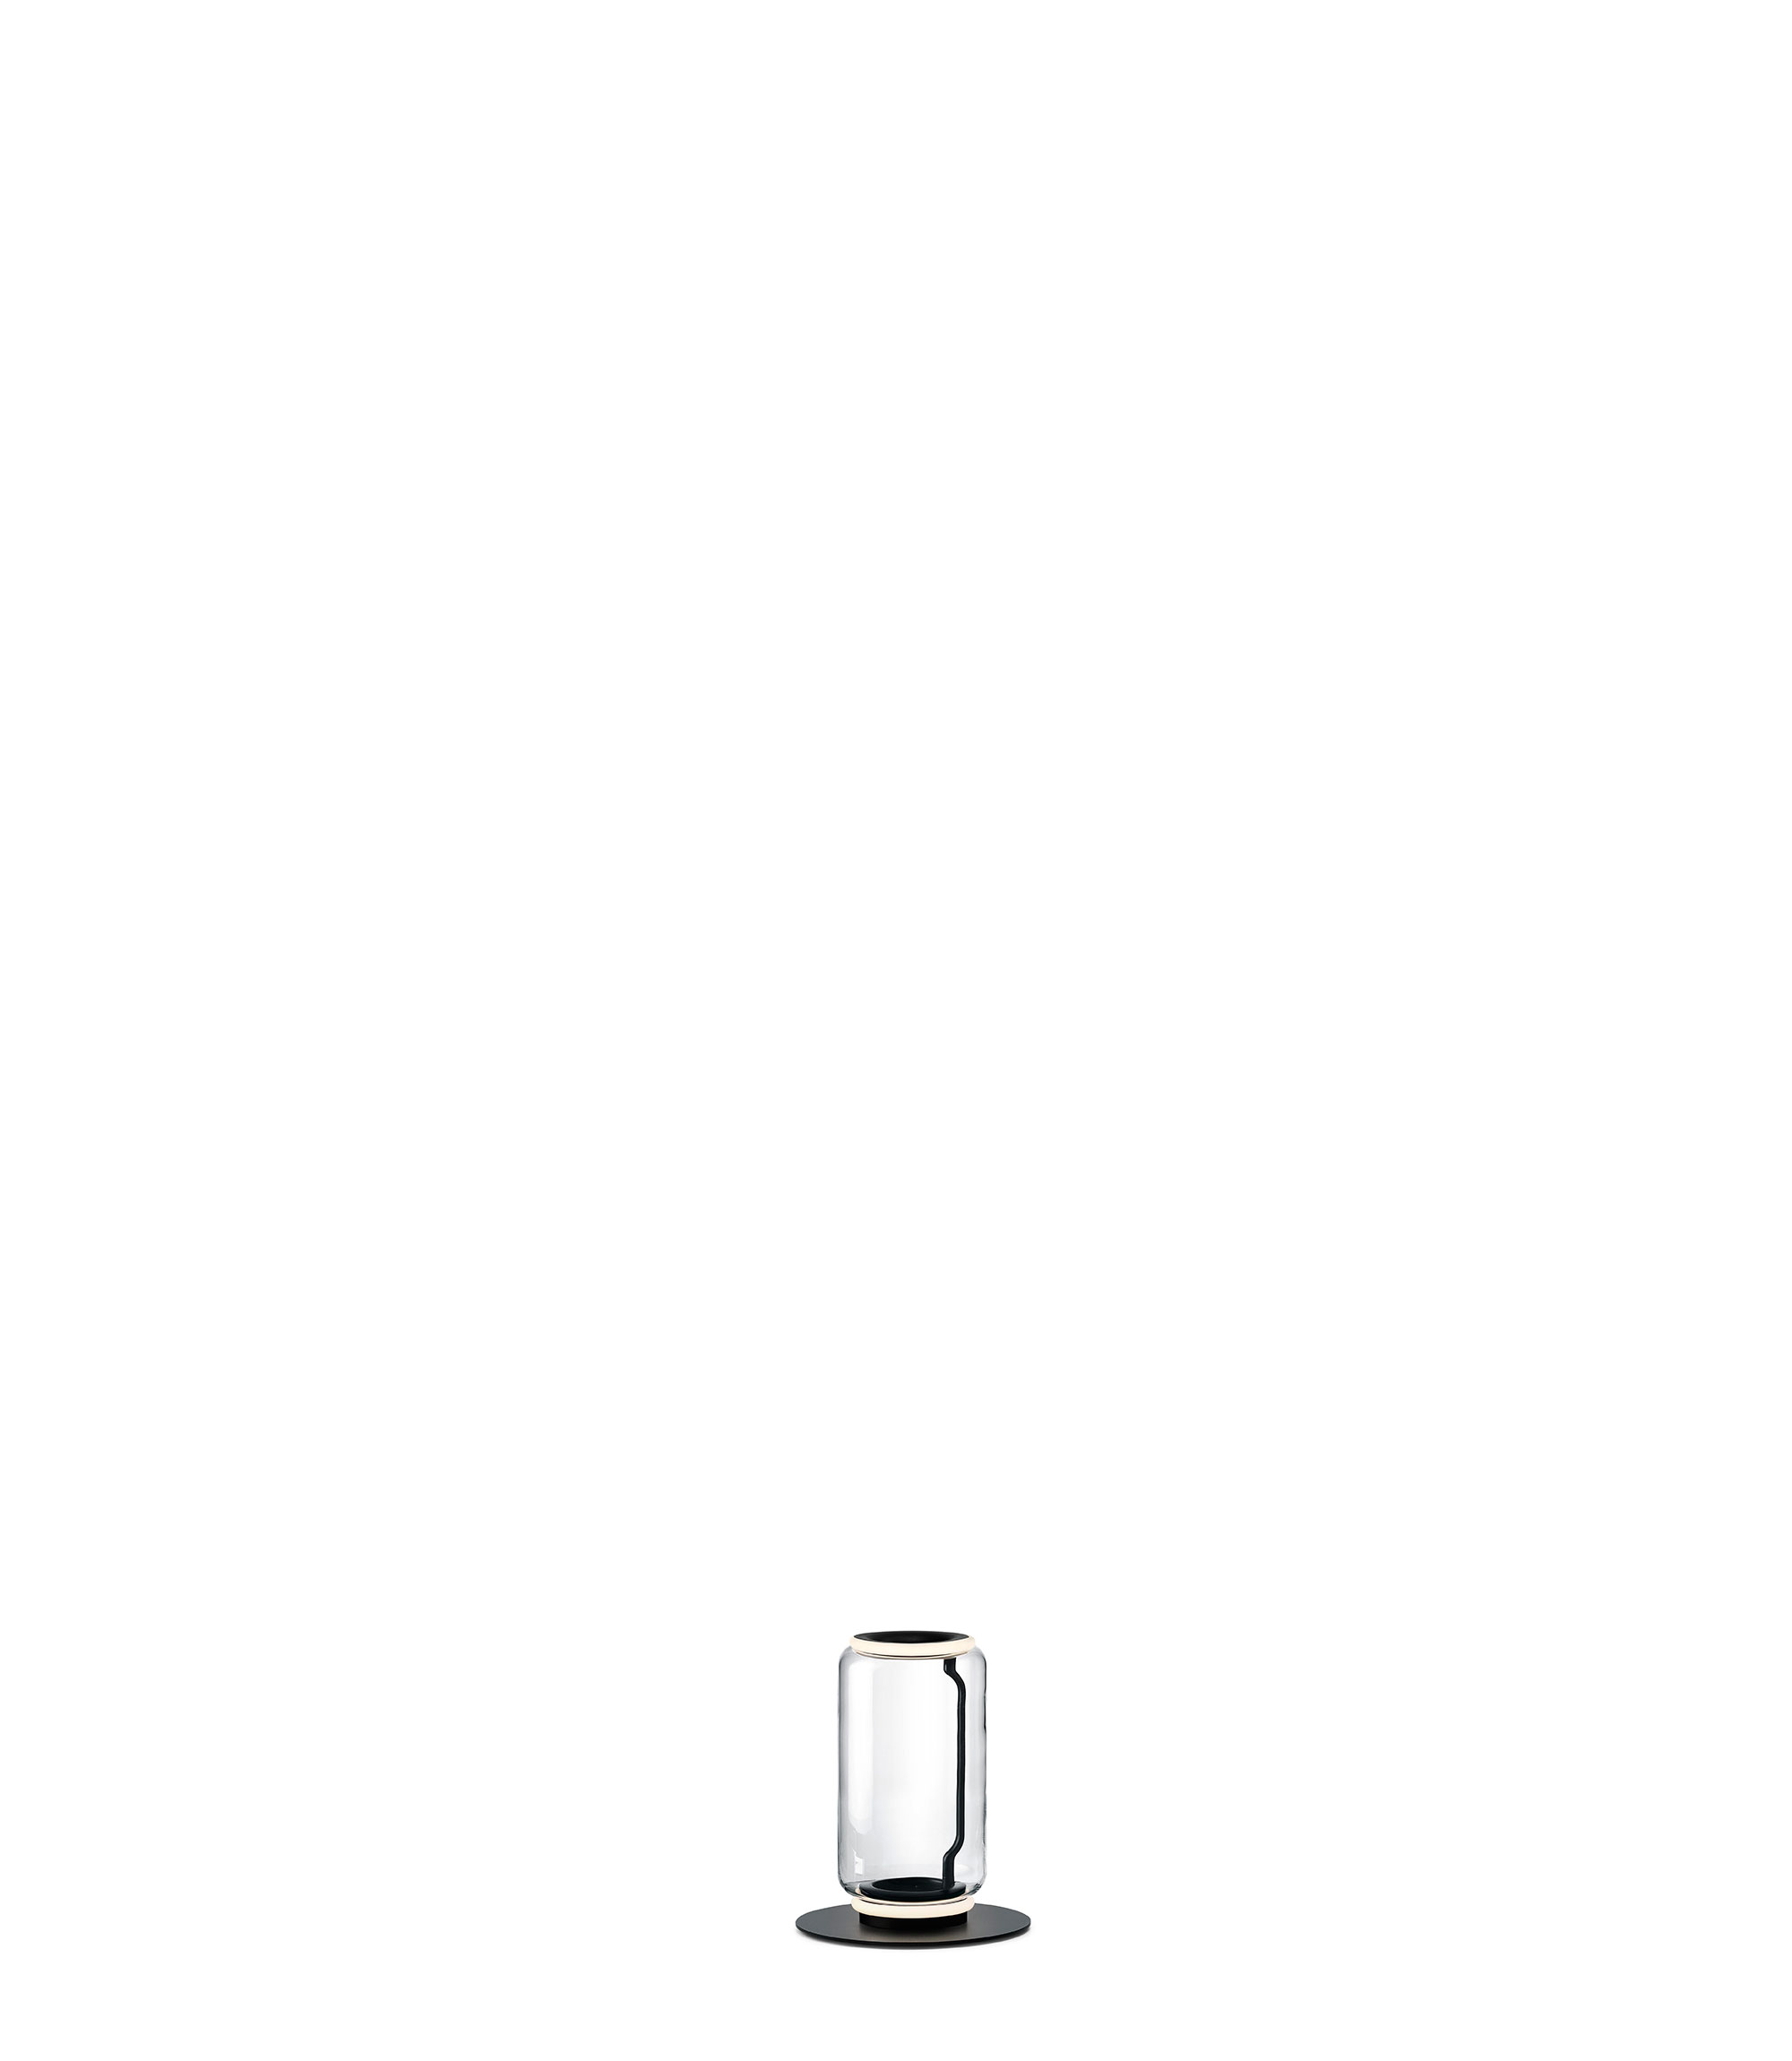 Noctambule floor 1 low cylinders small base grcic flos F0288000 product still life big